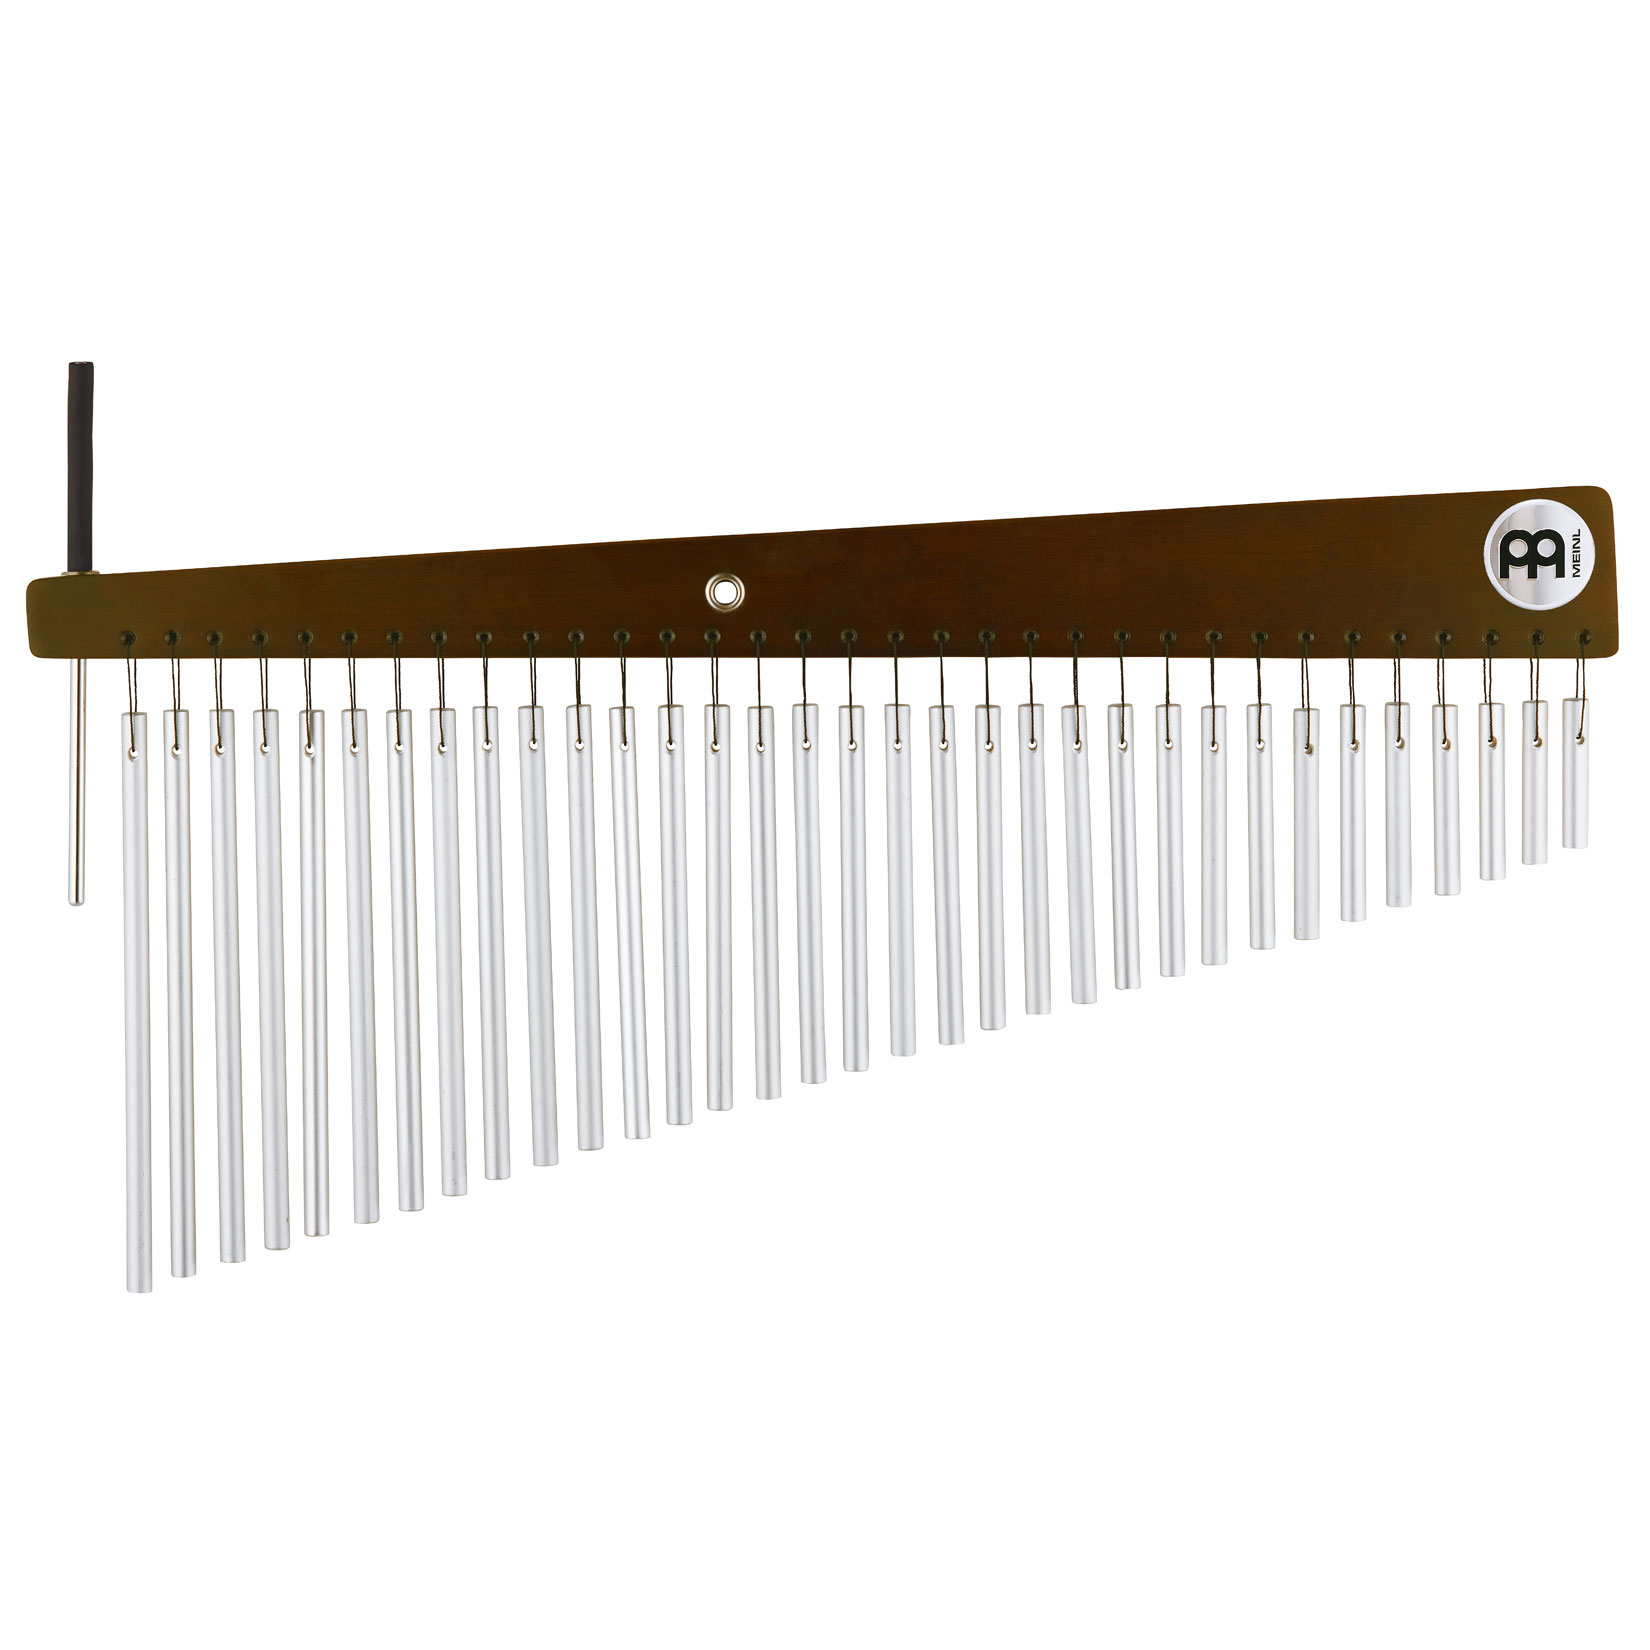 Meinl Single Row 33-Bar Vintage Wind Chimes